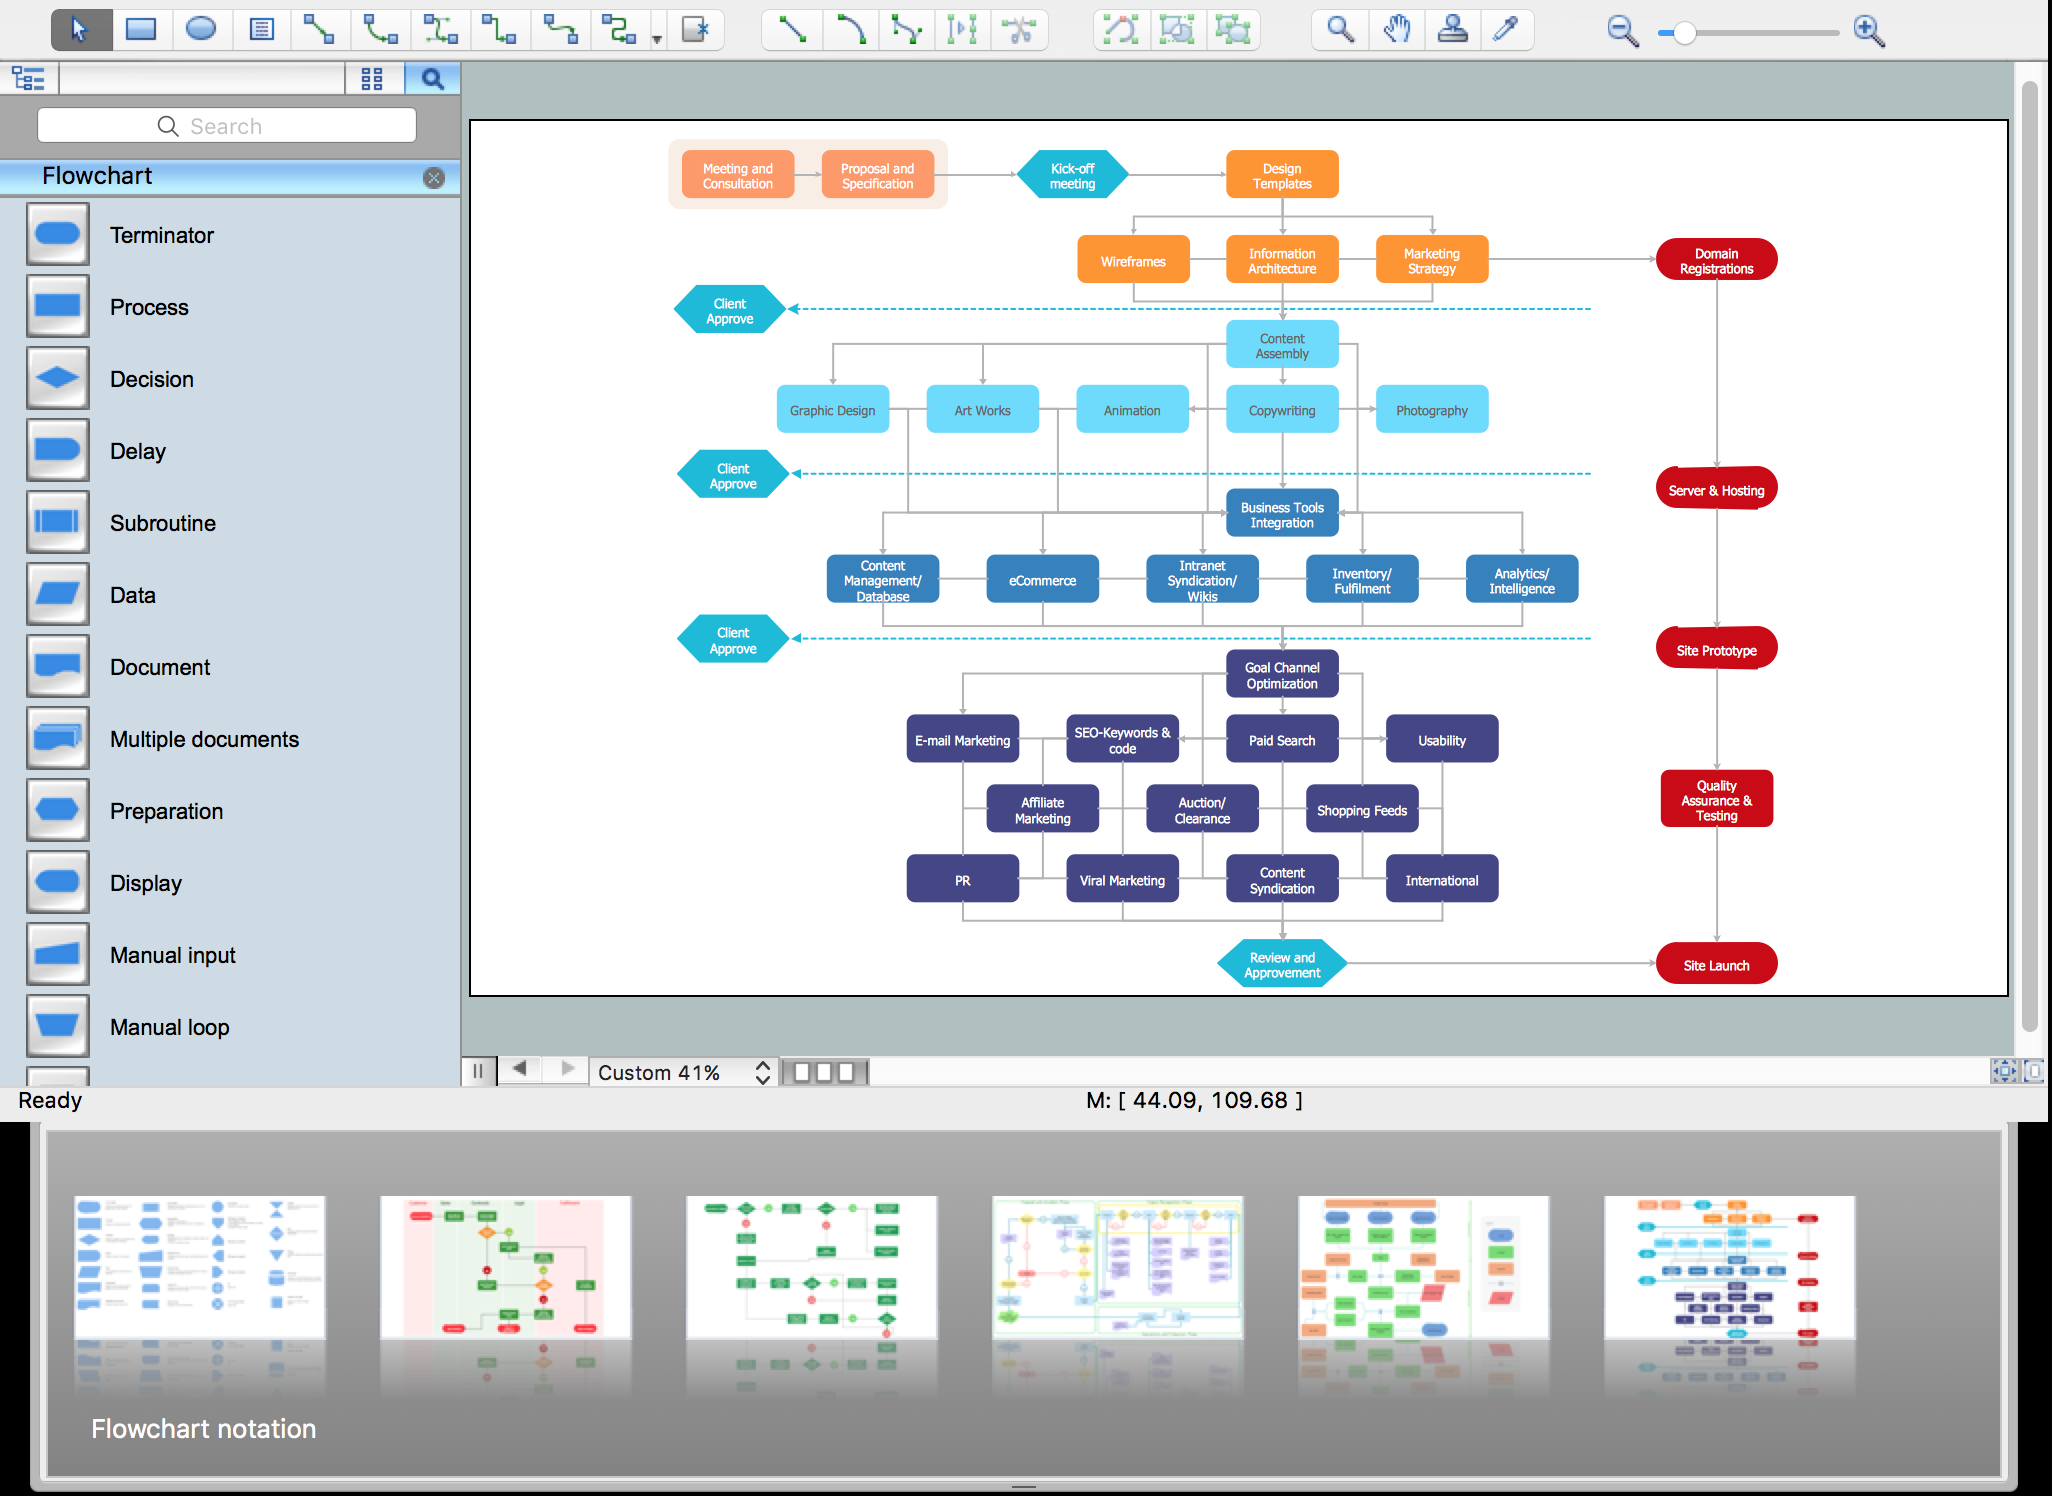 flowchart definition with conceptdraw pro - Visio Like Program For Mac